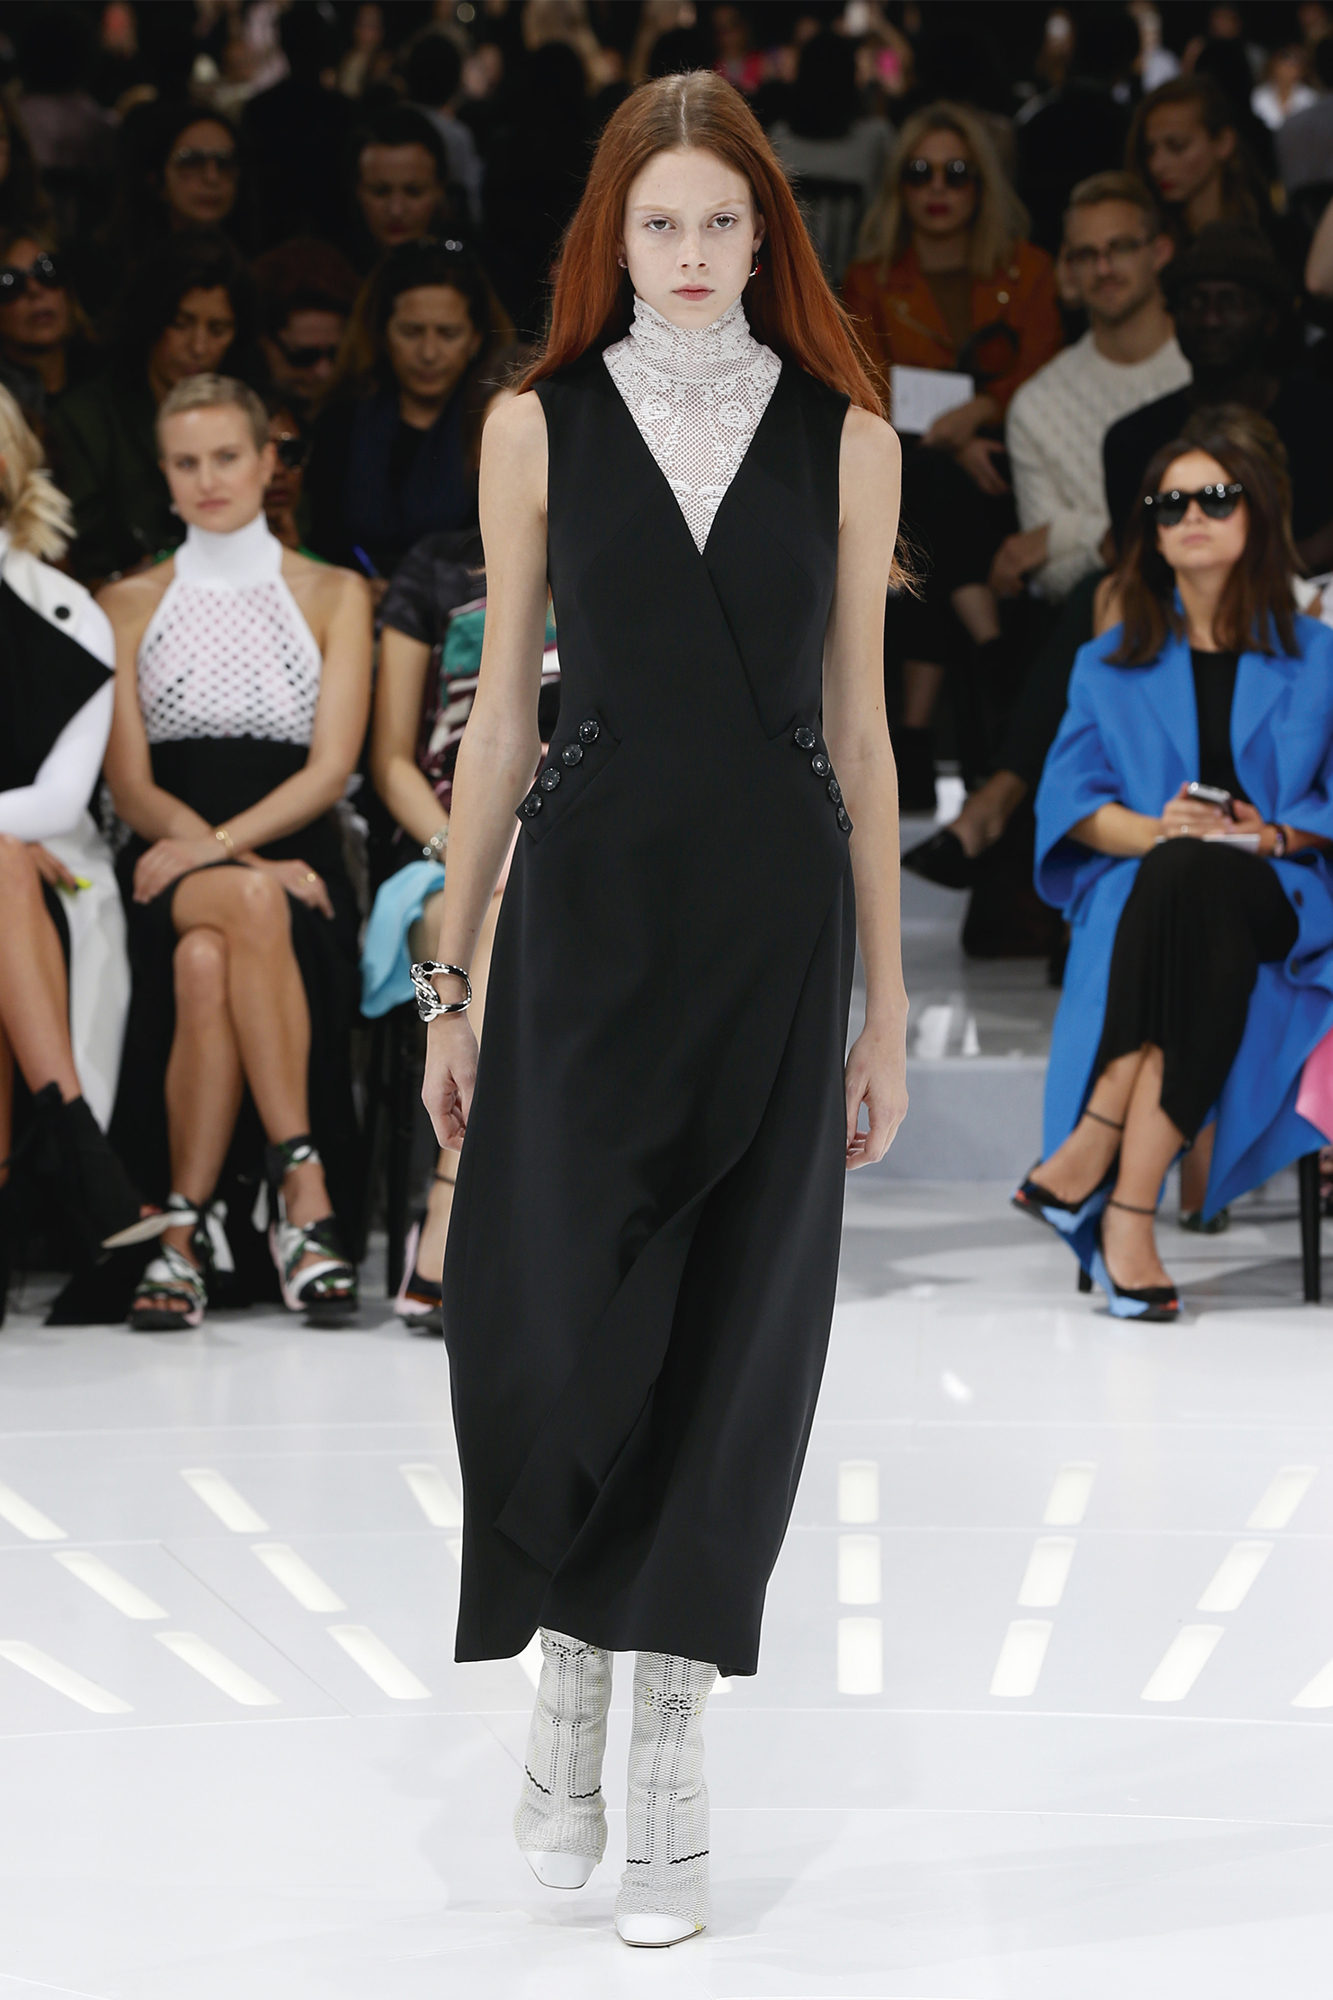 Christian Dior Haute Couture Spring-Summer Ready To Wear Dresses & Accessories Collection 2015-16 (31)